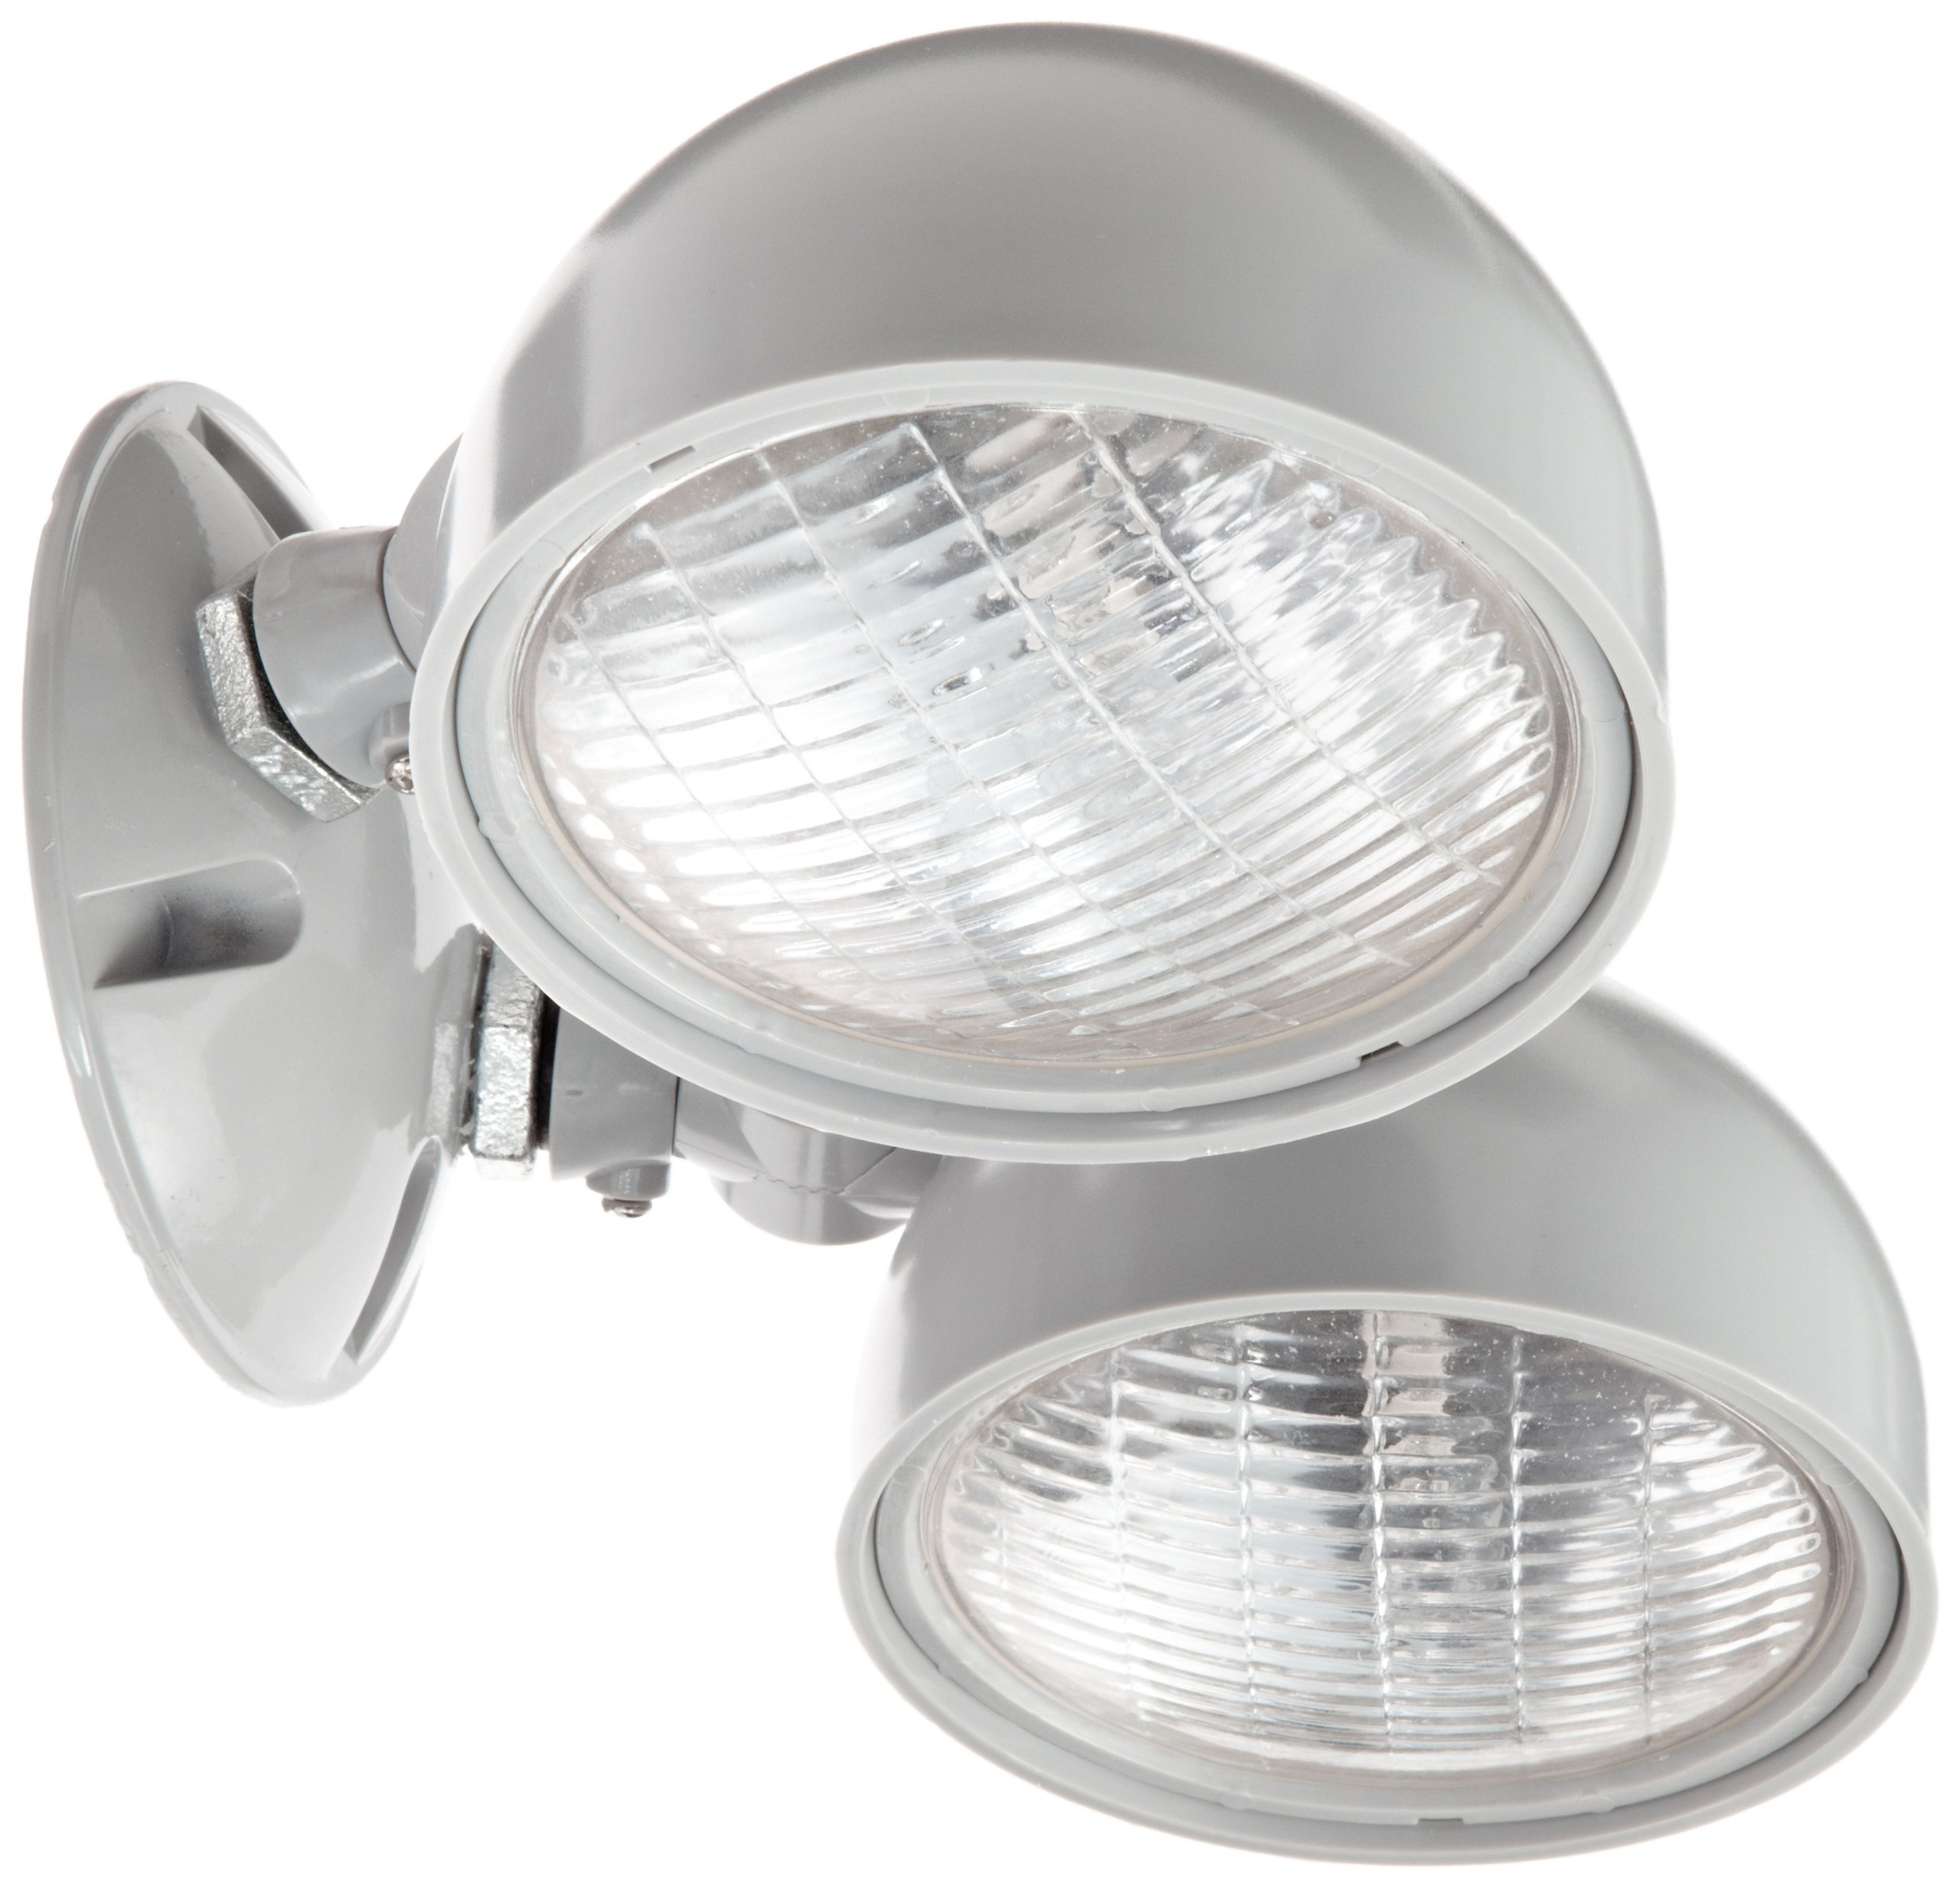 Morris Products 73065 Remote Emergency Light Head, 2 Weatherproof, Incandescent, 7.2 Watts, 6 Volts